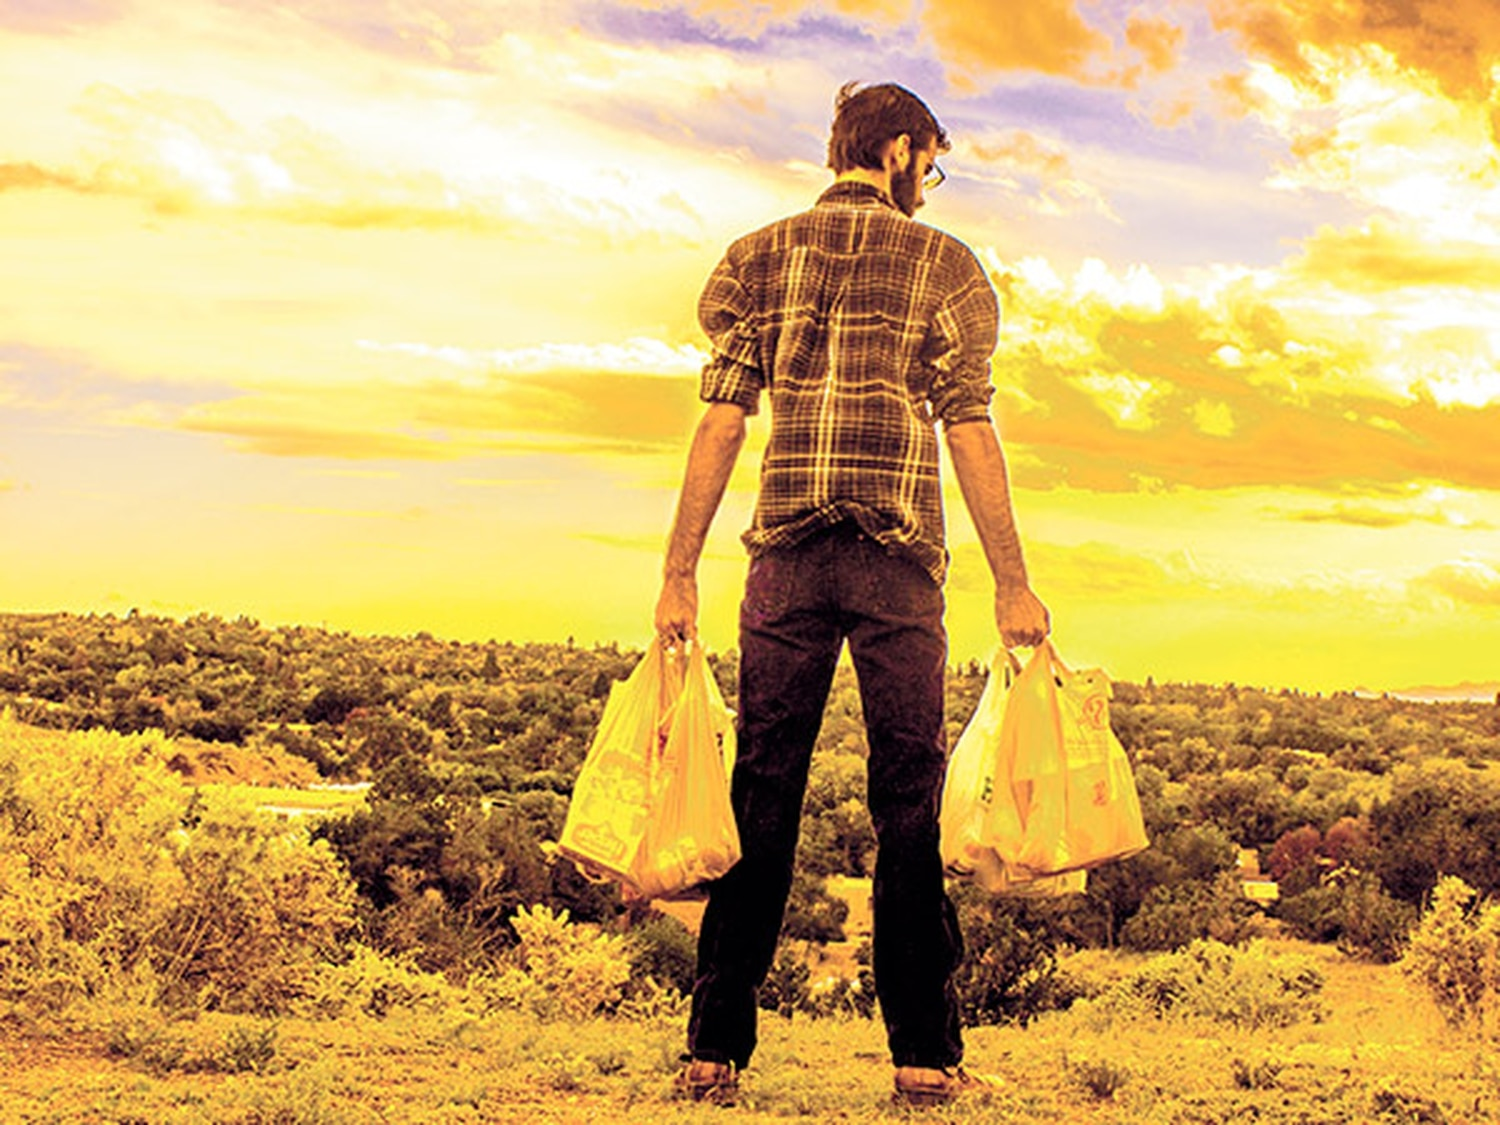 Beginning in late February, plastic bags 2.25 mils and thinner will be banned in Santa Fe.